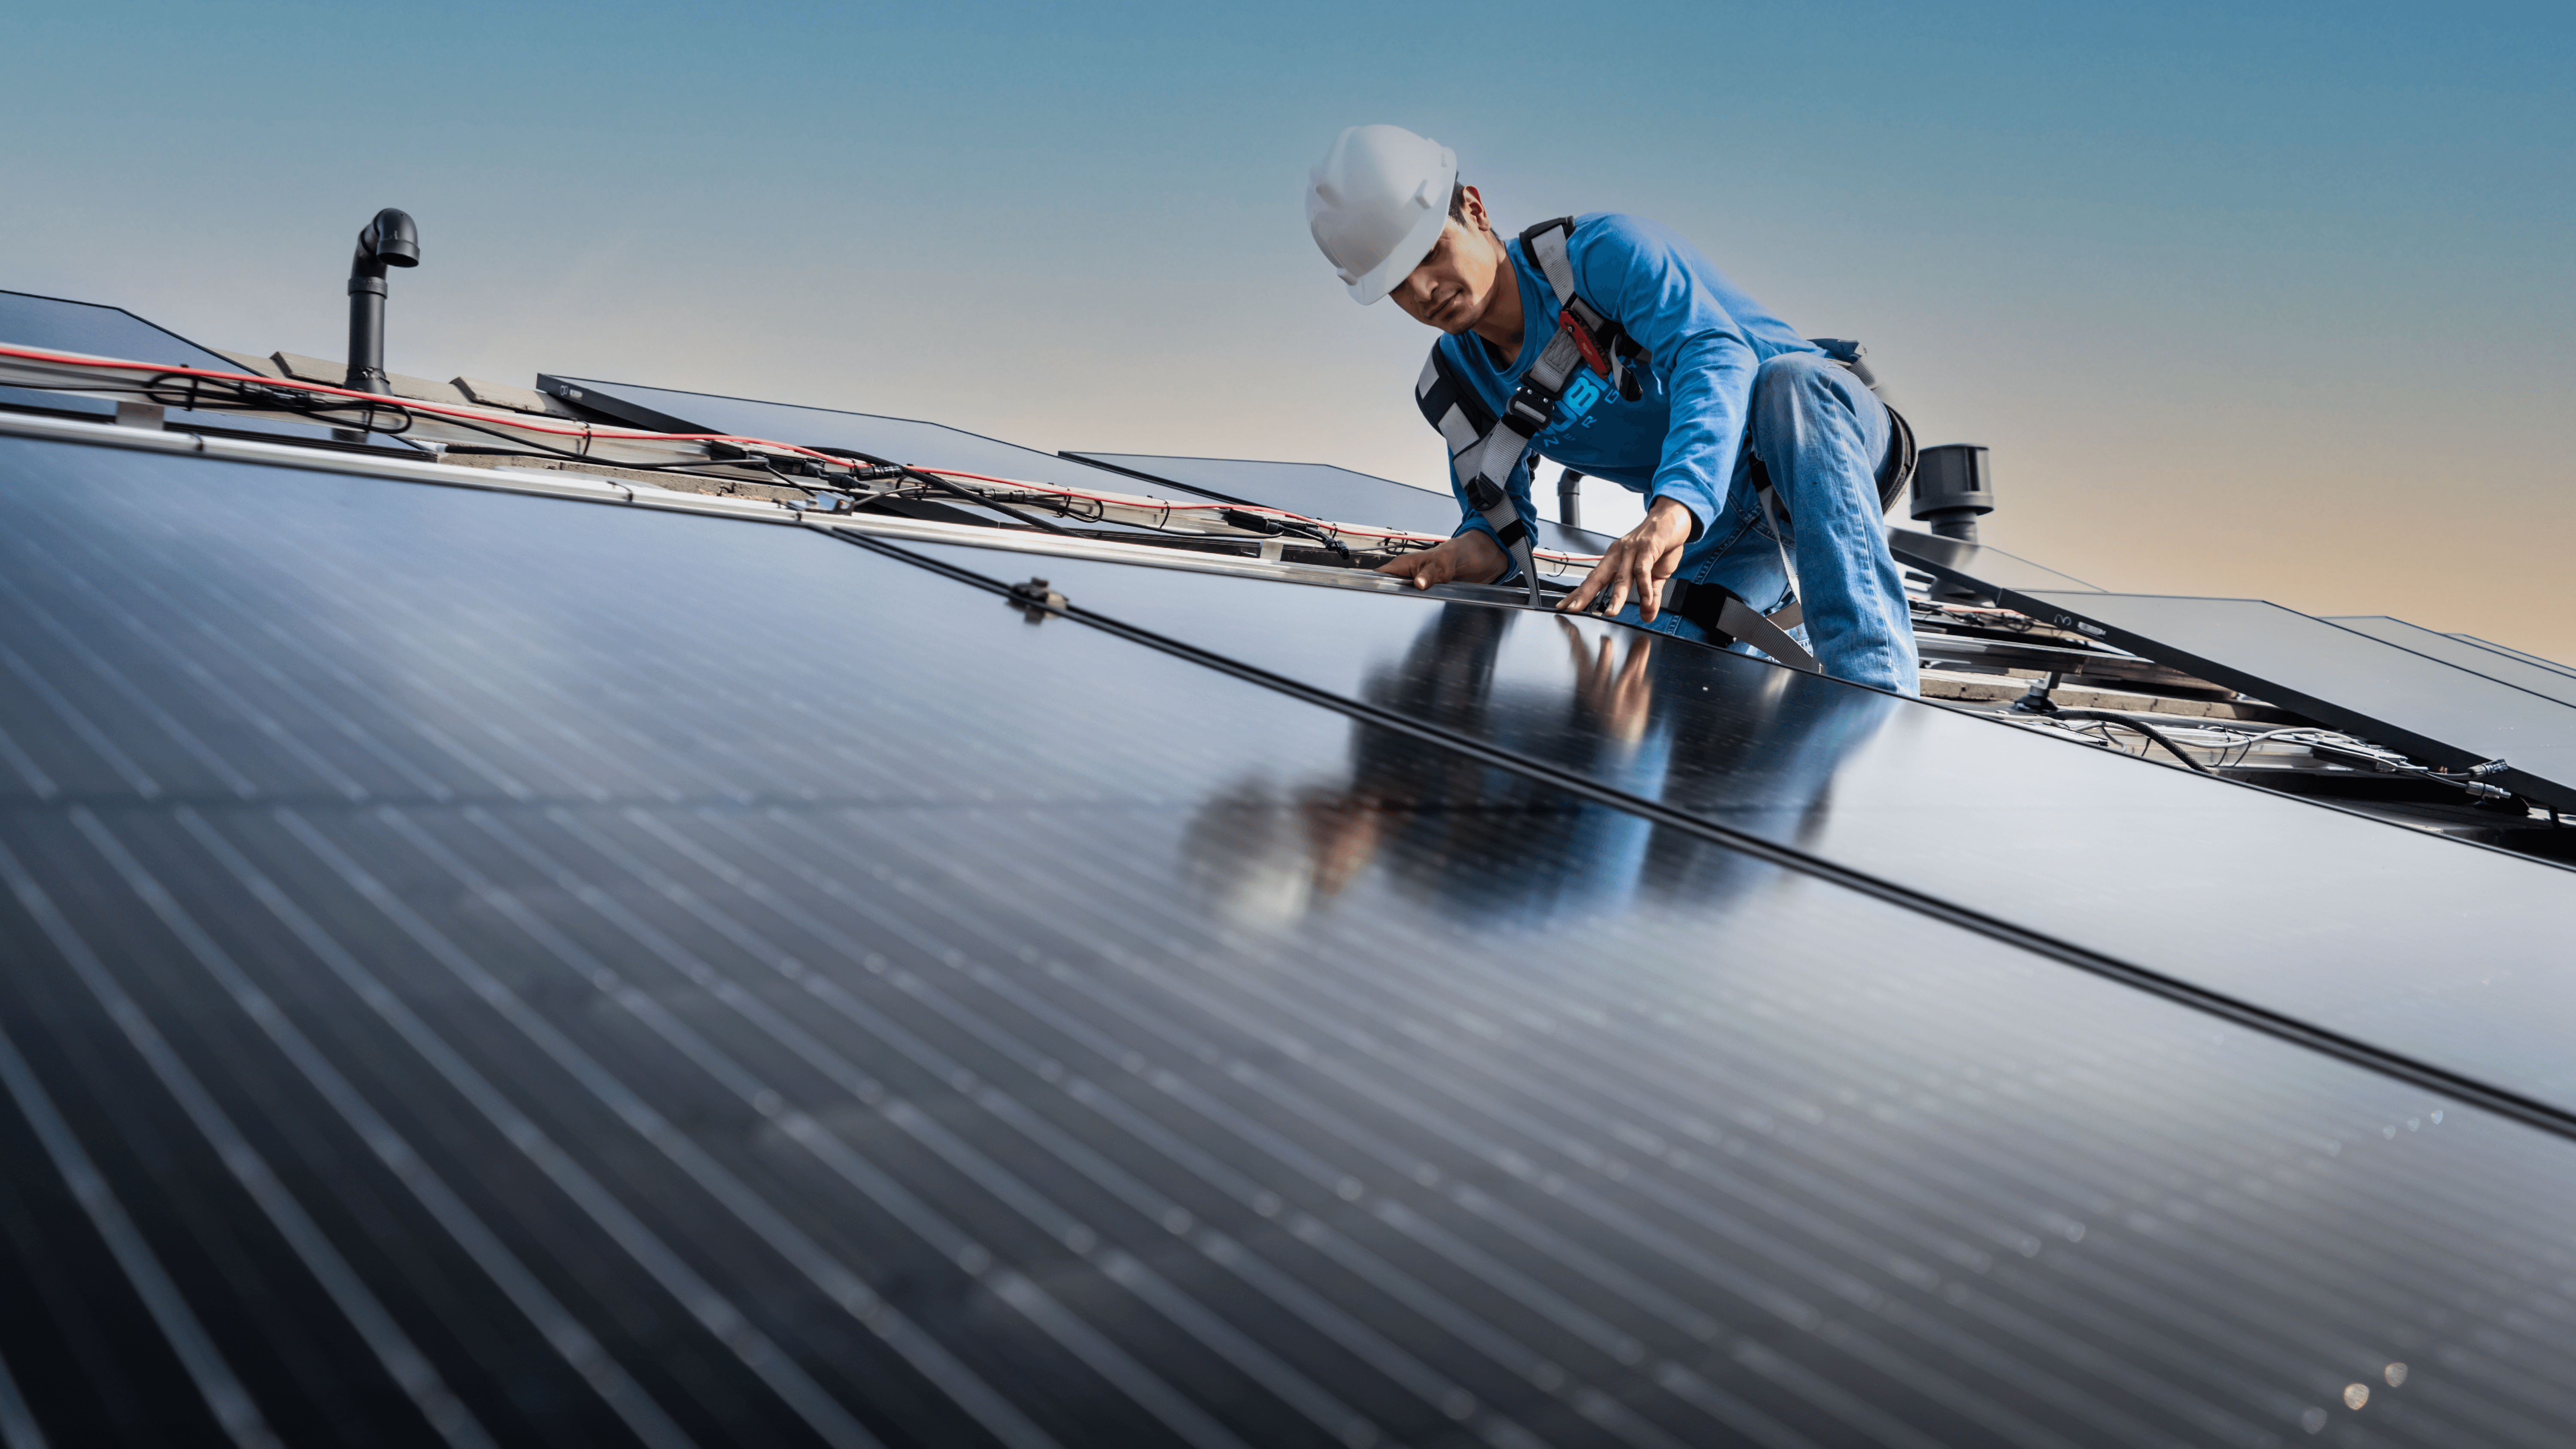 Solar installer Kuubix secures up to $104M as part of an investment transaction setting stage for continued aggressive U.S. expansion.